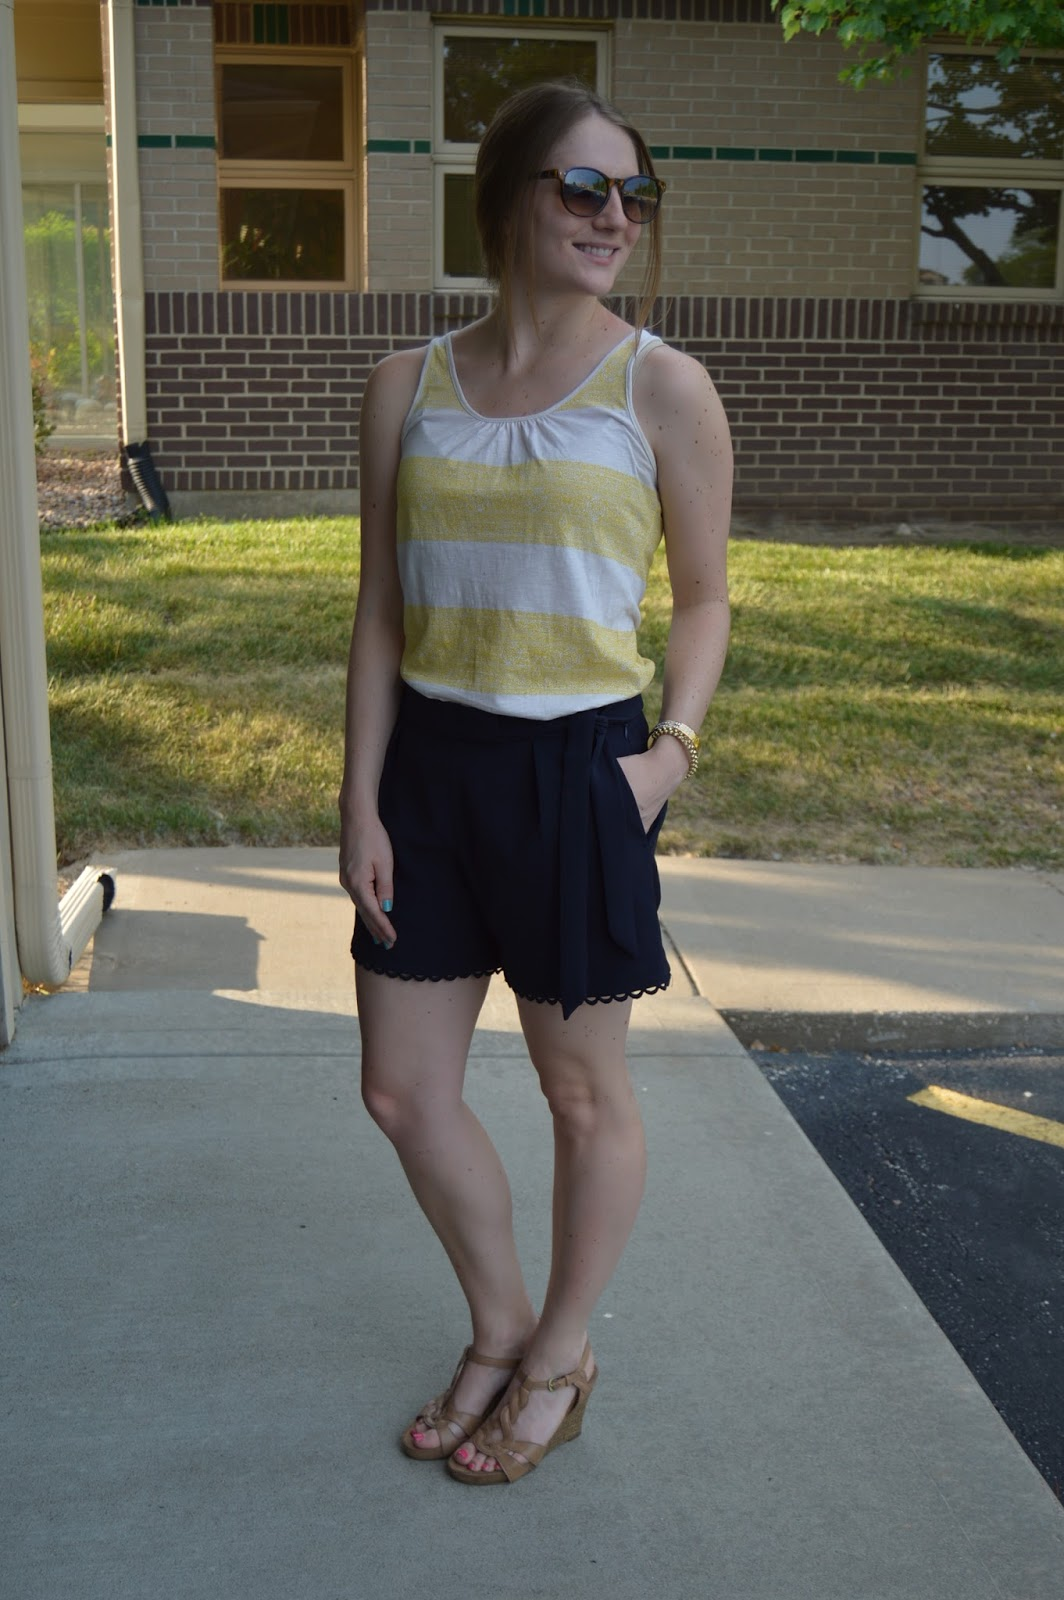 preppy summer outfit | summer outfit ideas | cute outfit ideas for summer | preppy looks for summer | navy shorts | yellow striped tank top | what to wear this summer |